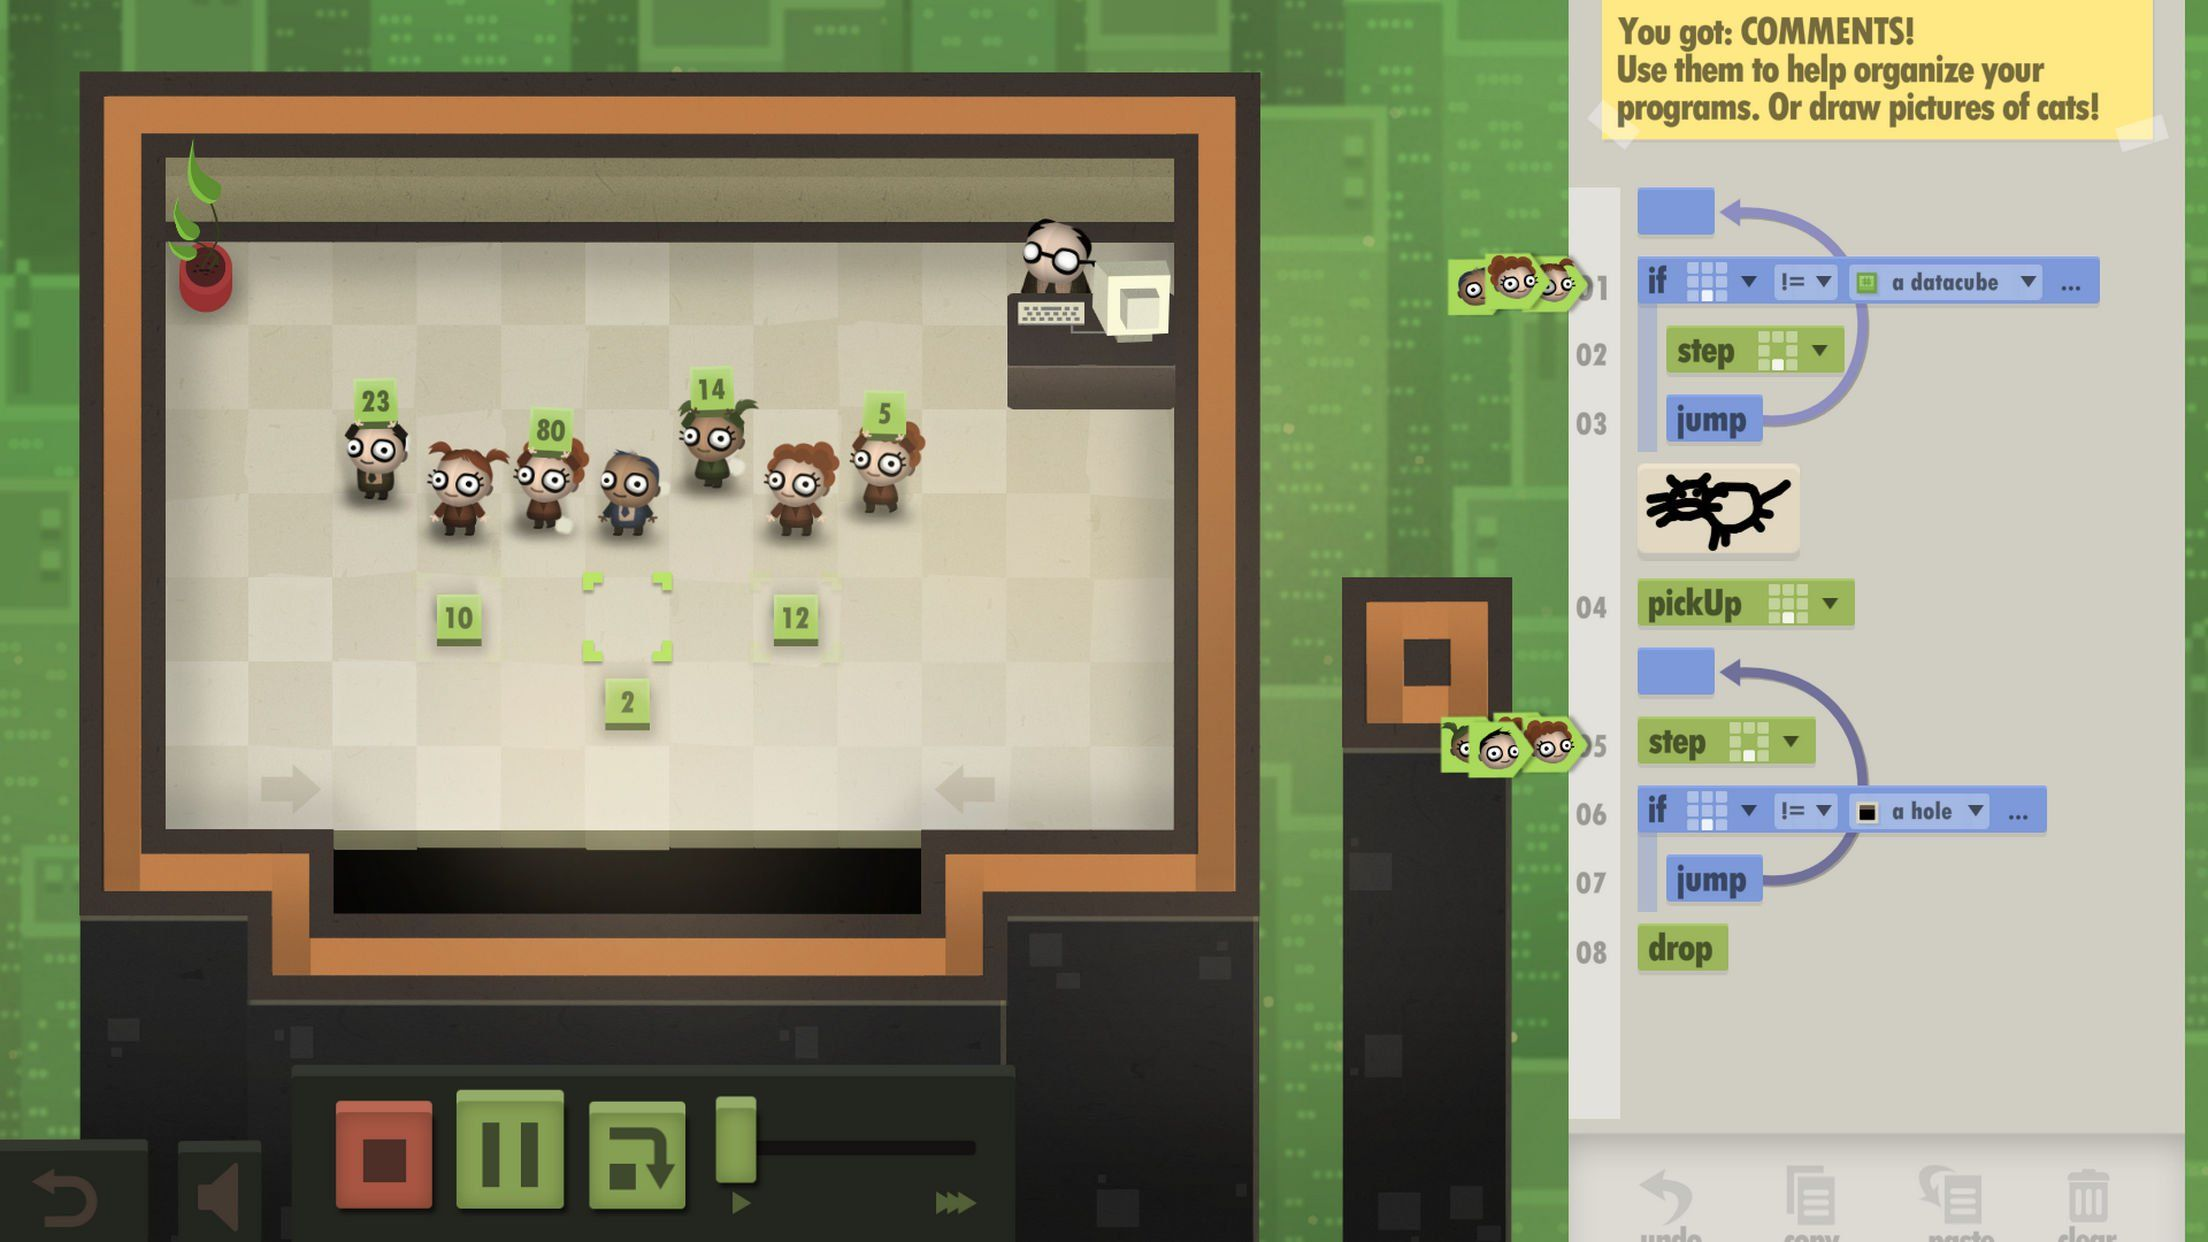 Automate a Swarm of Office Workers to Solve Puzzles in 7